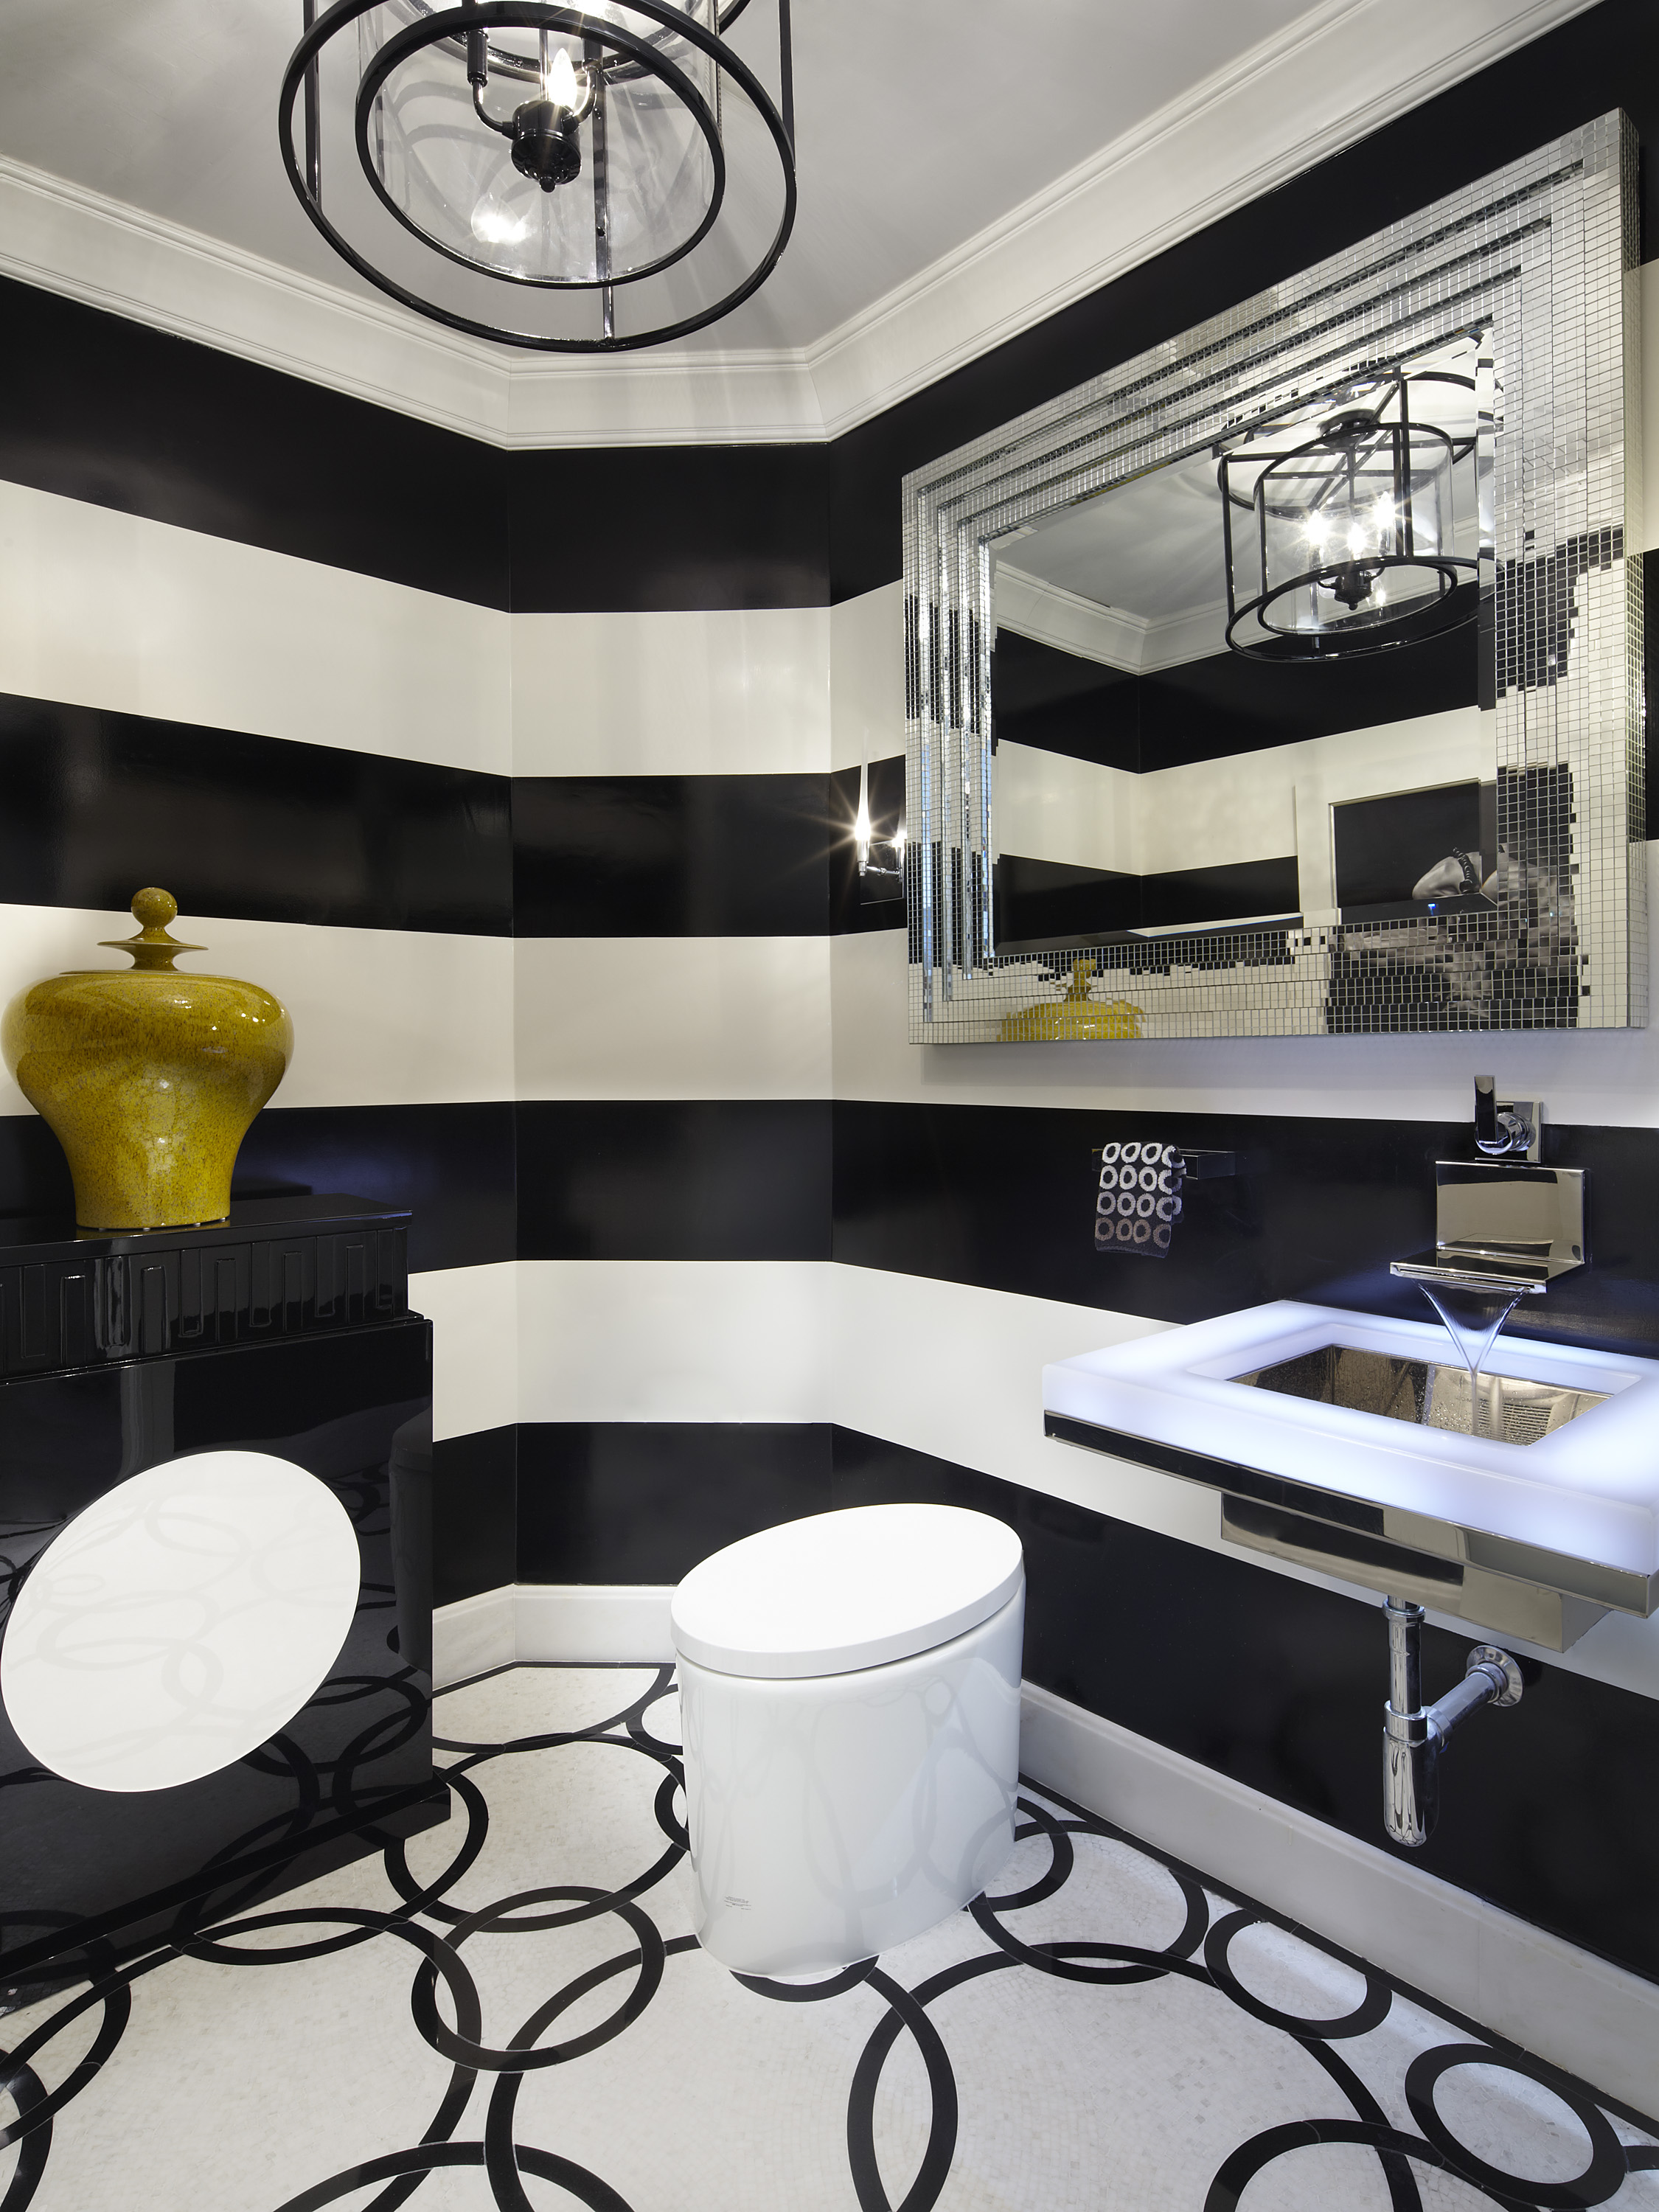 Powder Room with water.jpg